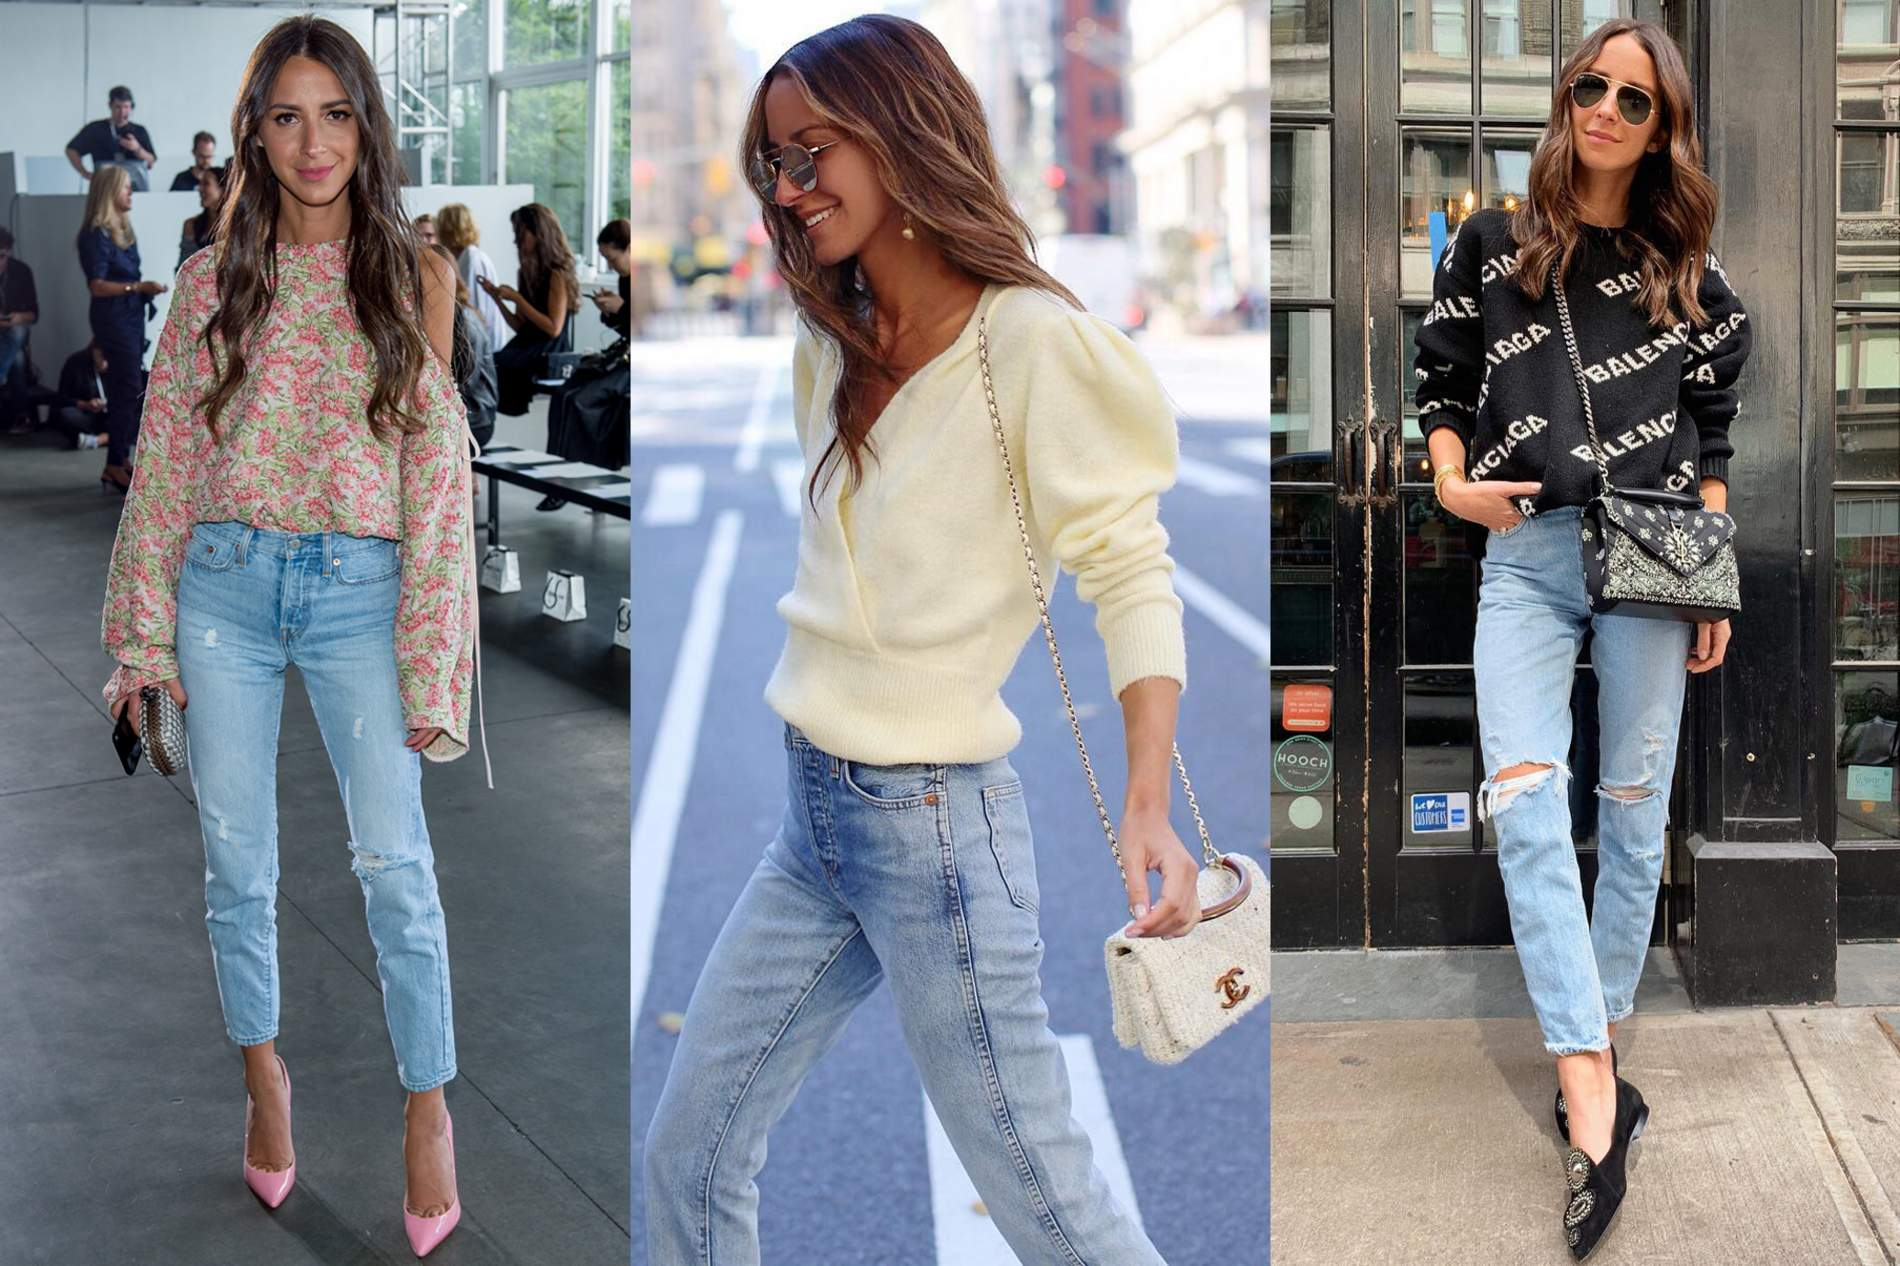 55496f5434 American blogger and designer ARIELLE CHARNAS grants her 1.2 million  Instagram followers an access-all-areas pass to her super-stylish wardrobe.